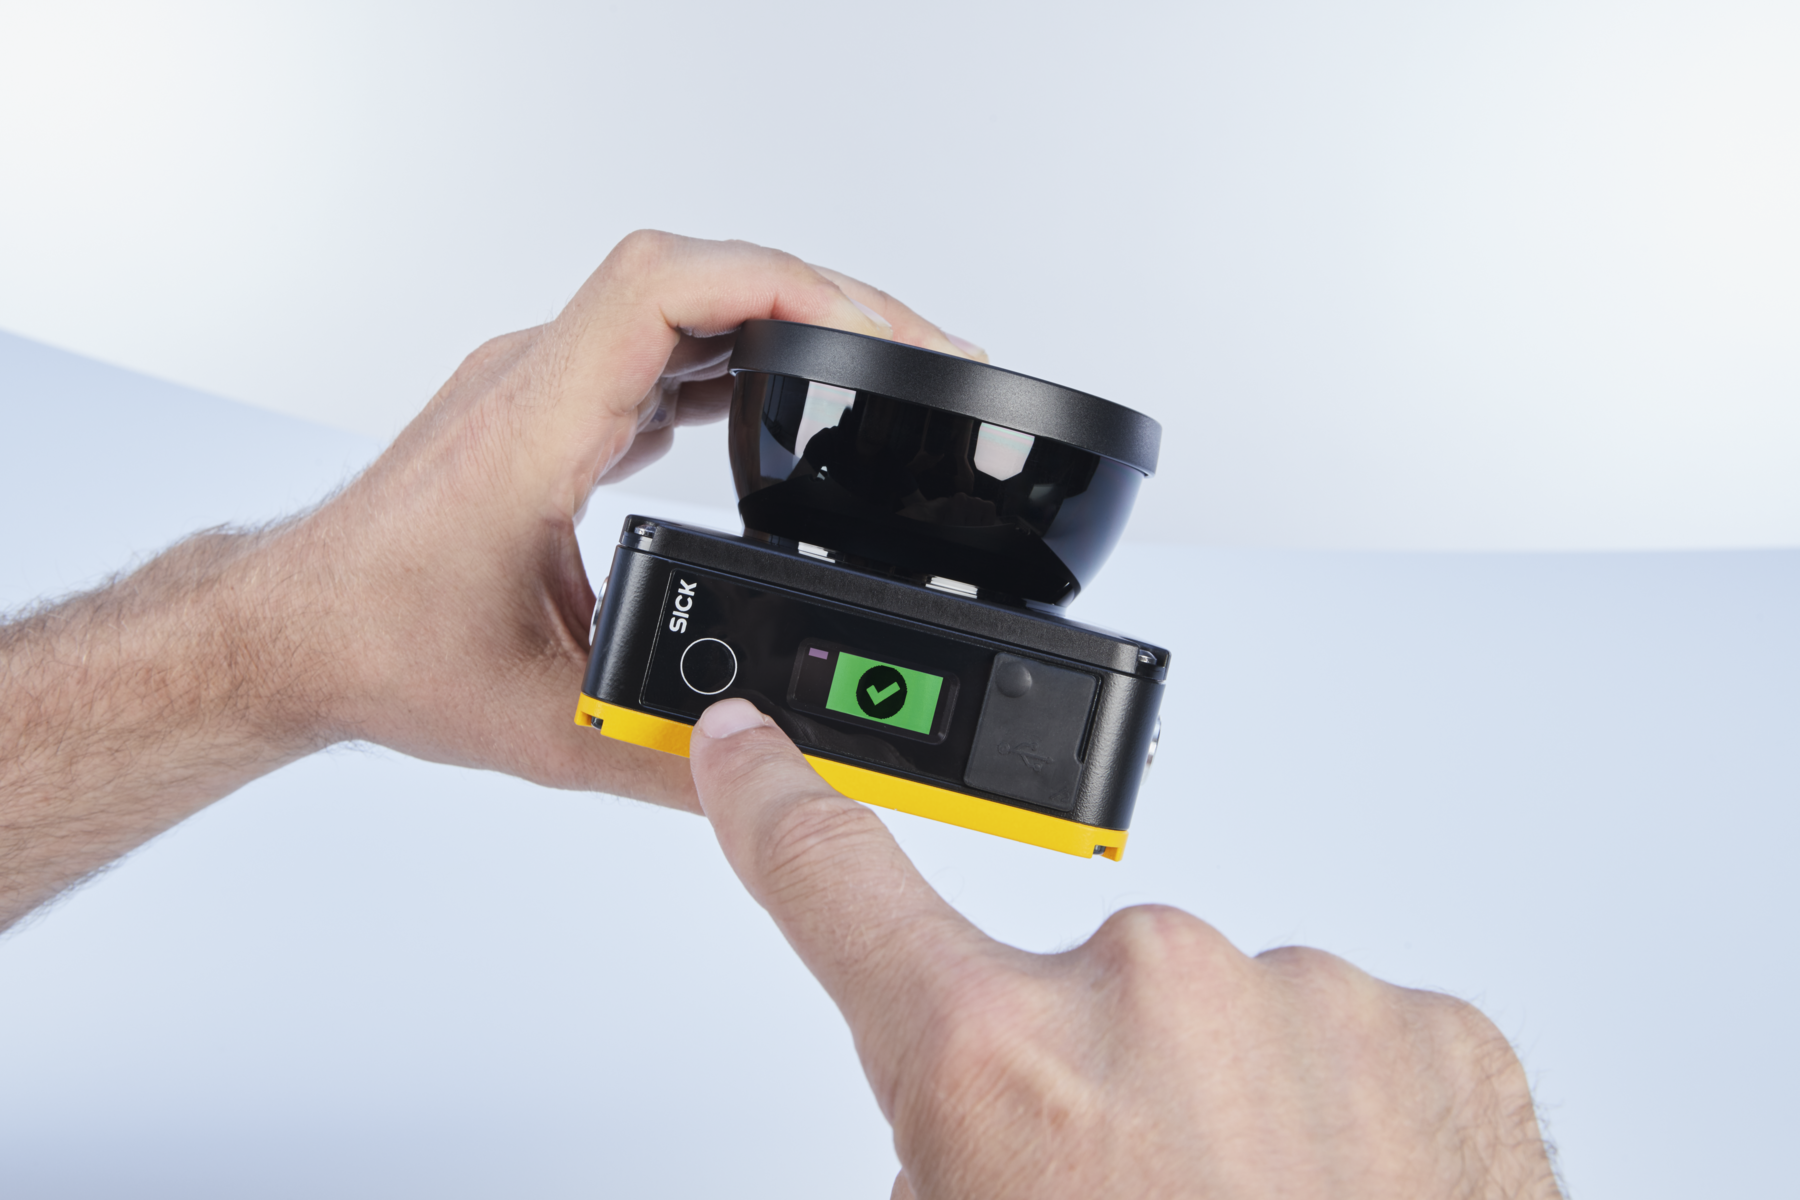 smallest safety laser scanner, nanoScan3 awarded Innovation Award from Robotics Business Review